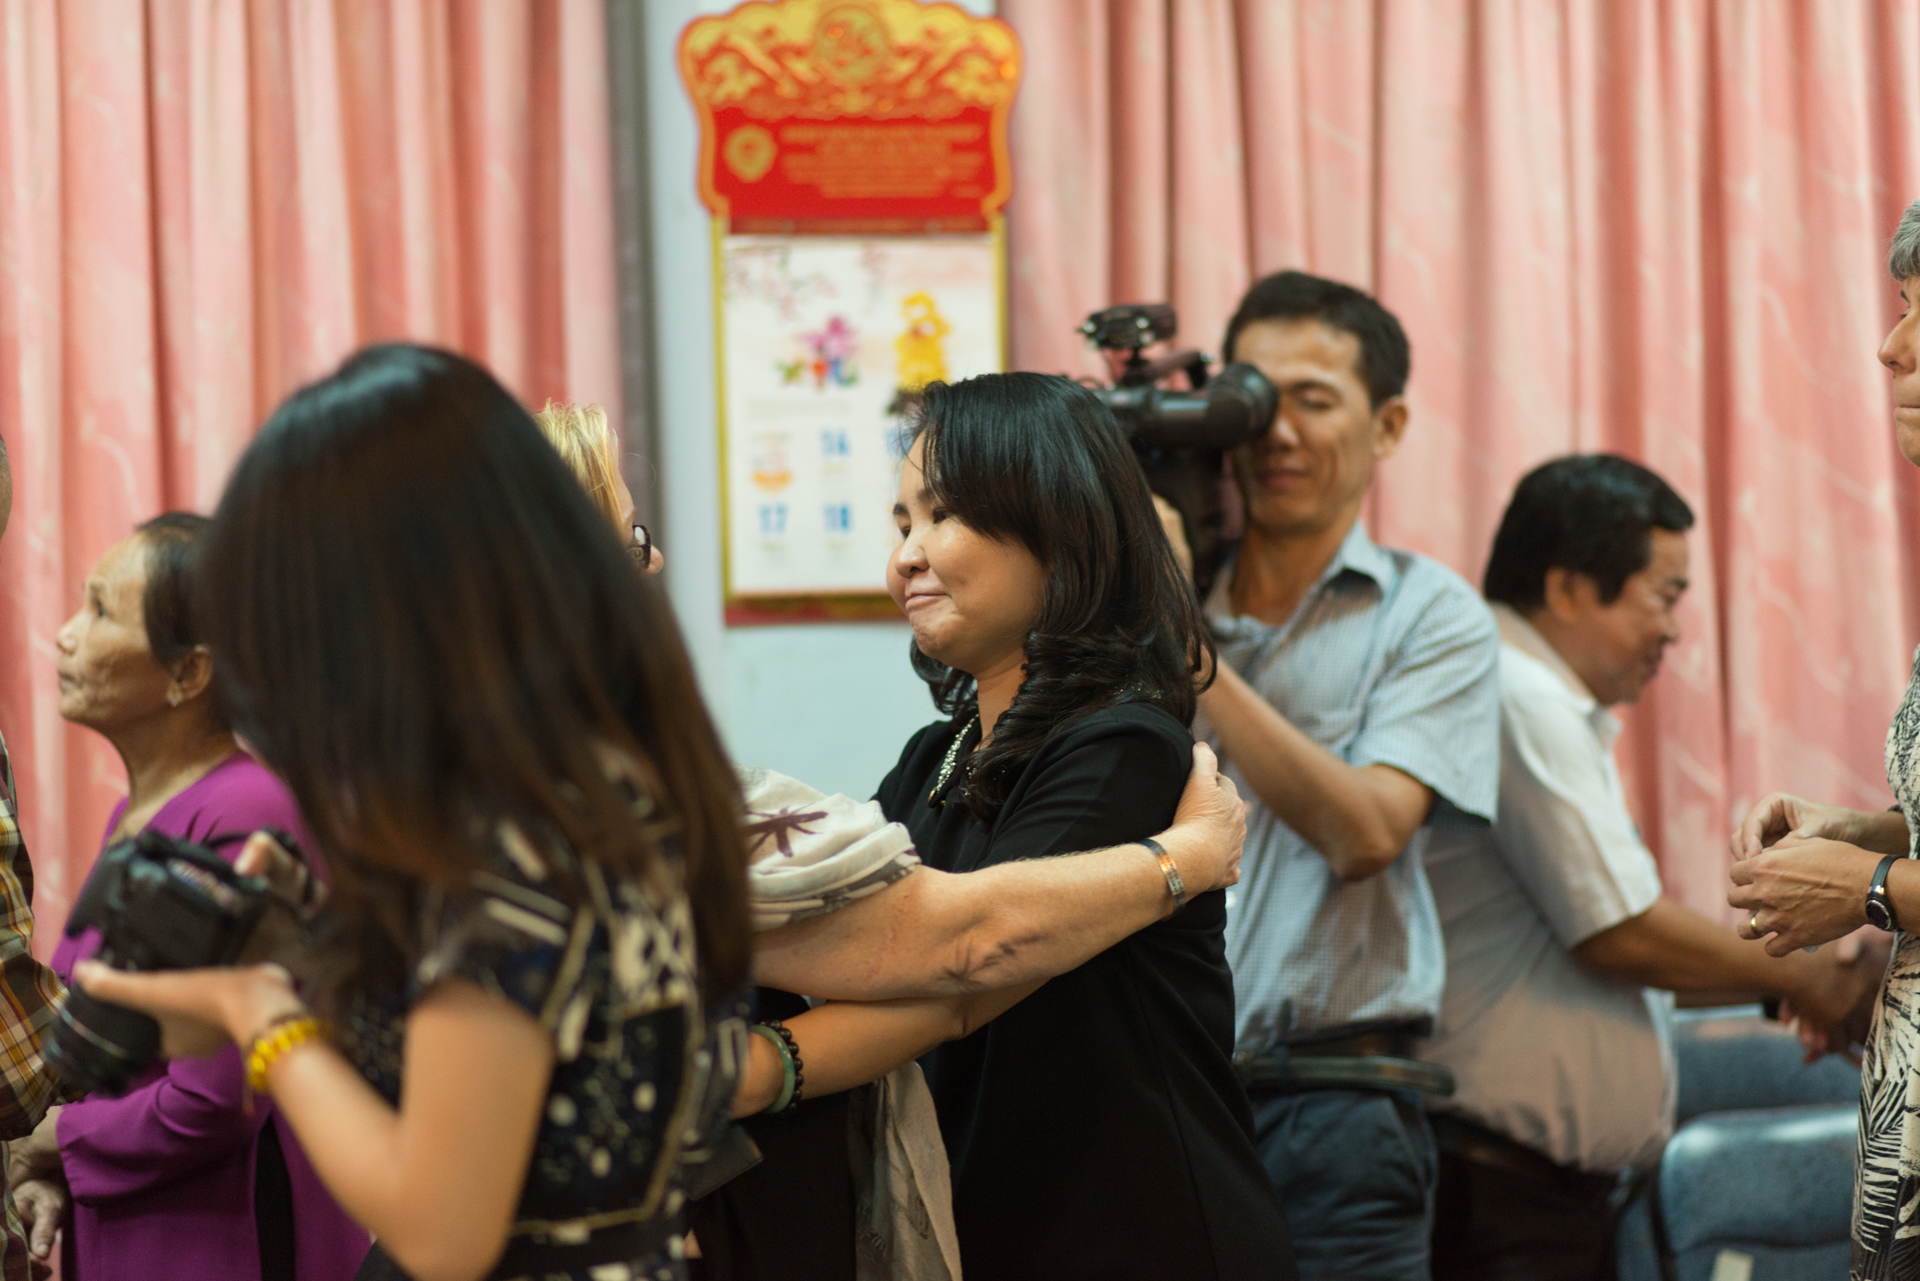 Ms. Diem gets a hug after the meeting. Photo courtesy Anthony Istrico.